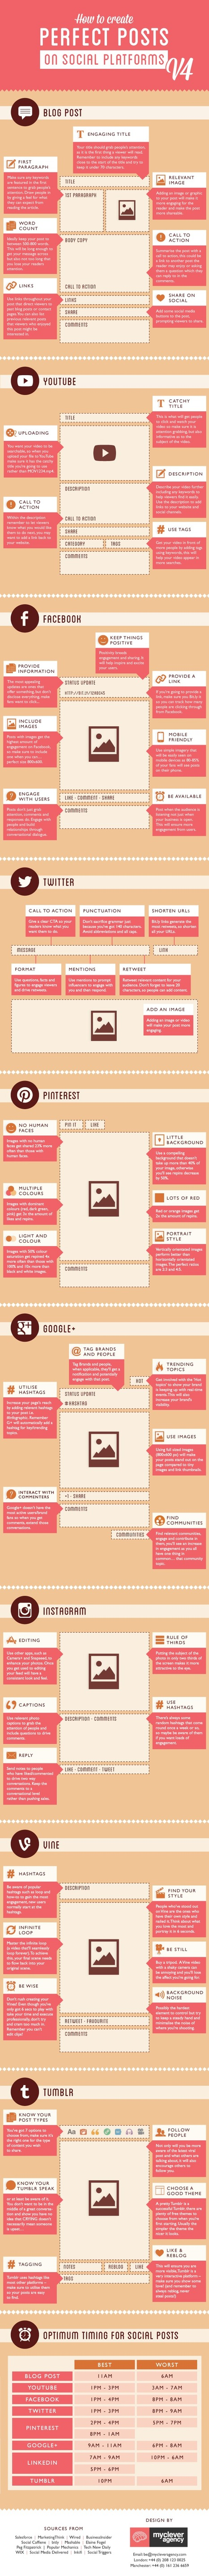 The Art of Creating Perfect Social Media Posts - infographic | Digital Brand Marketing | Scoop.it